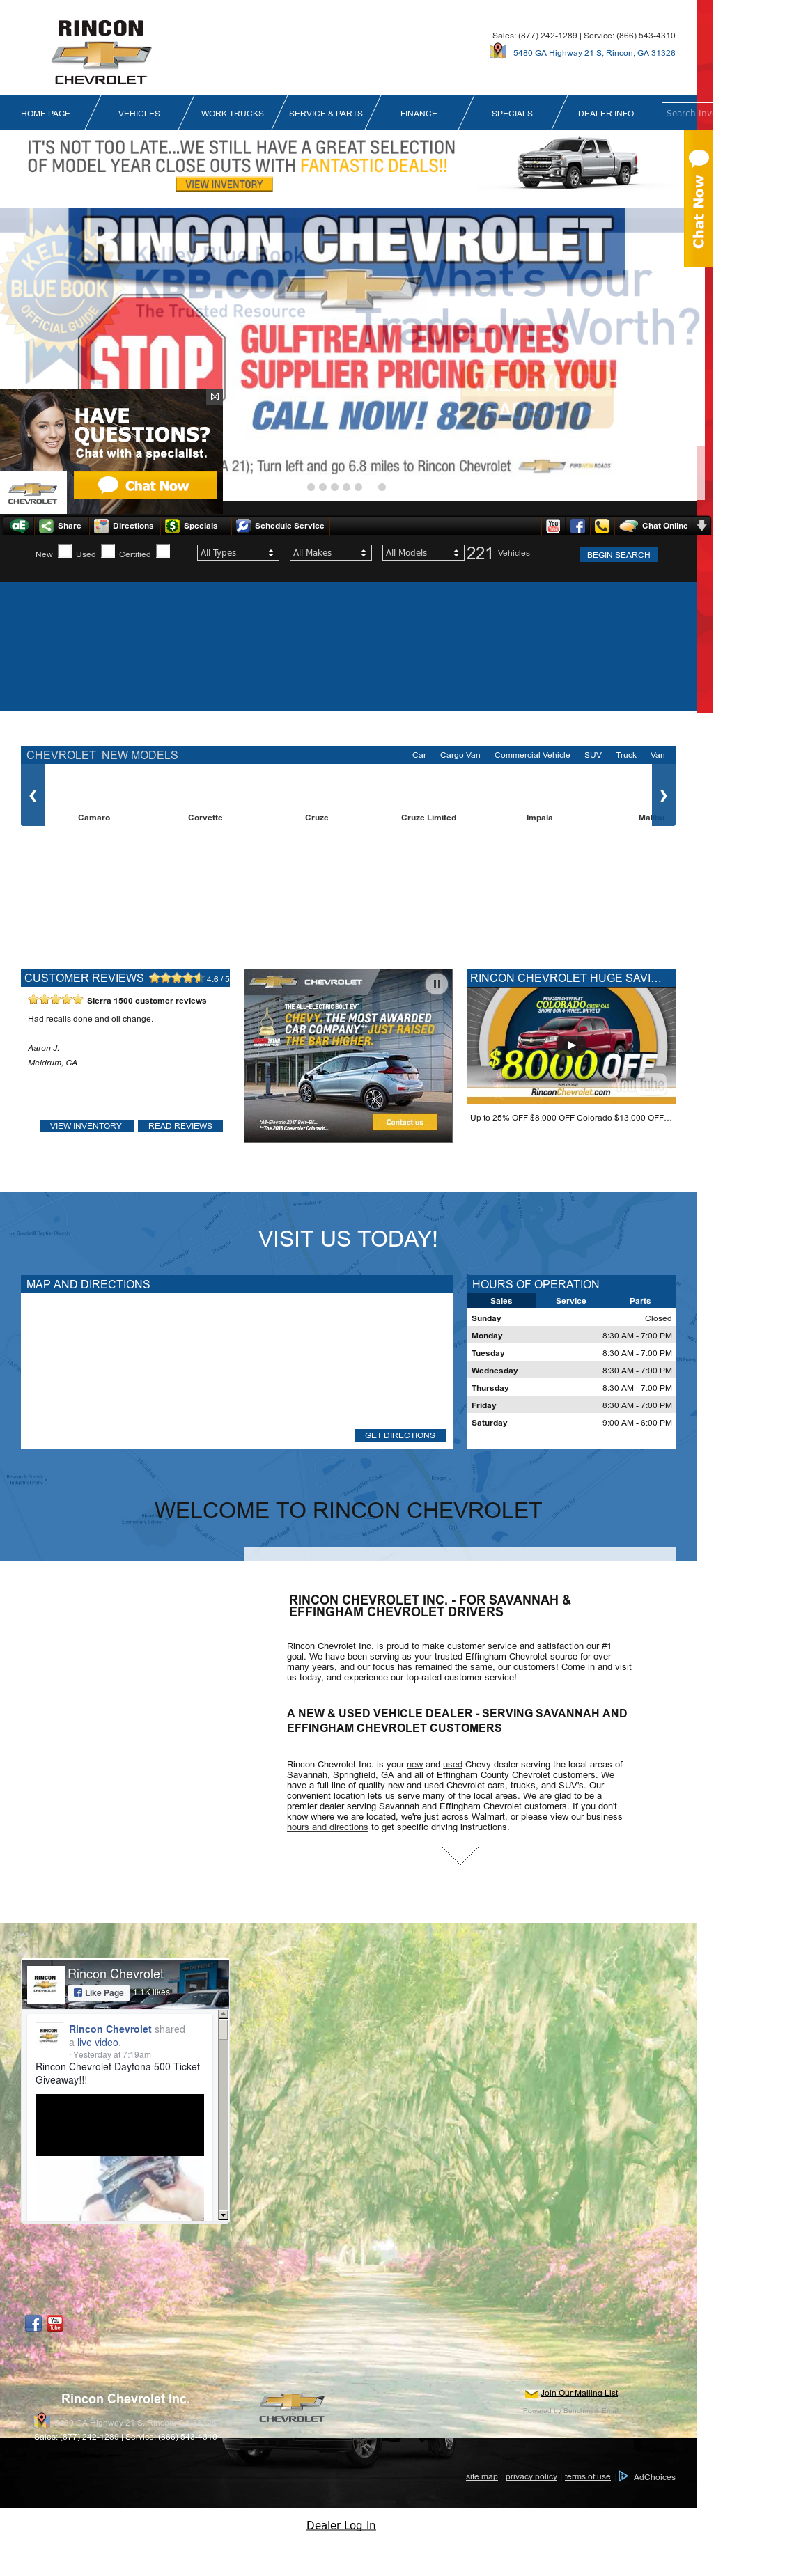 Rinconchevrolet Competitors, Revenue And Employees   Owler Company Profile